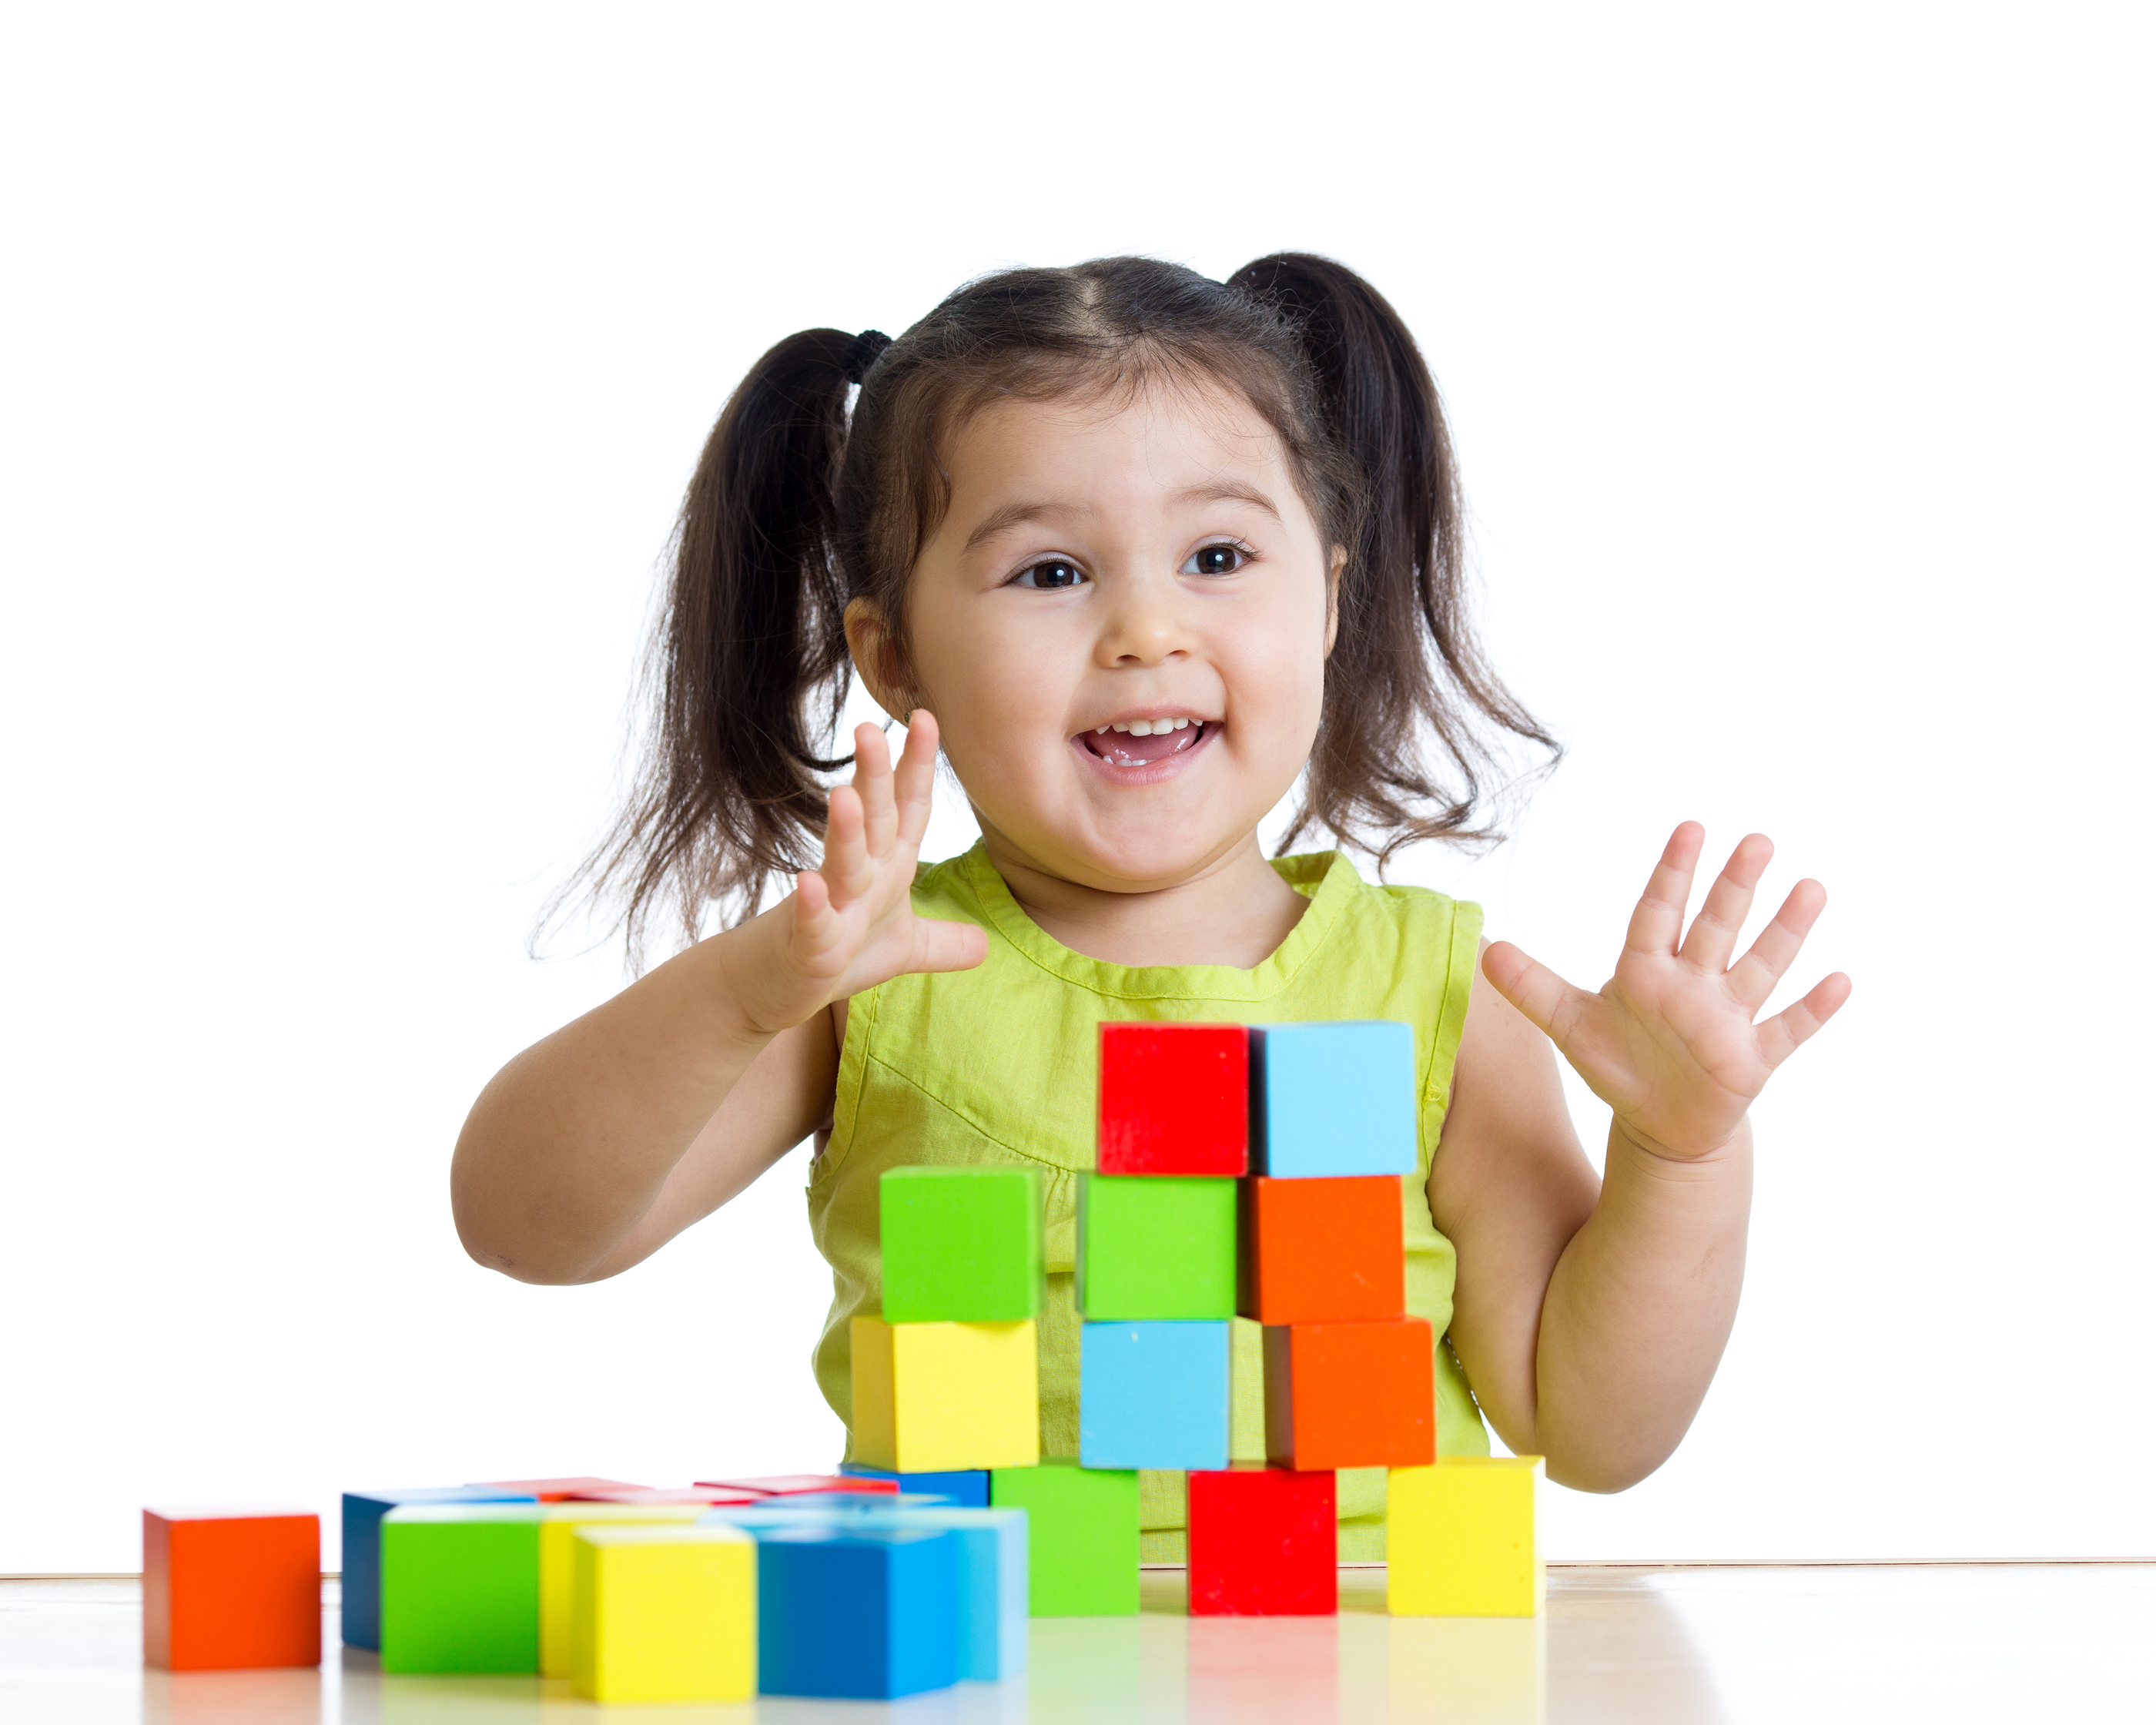 toddler child playing wooden toy blocks isolated